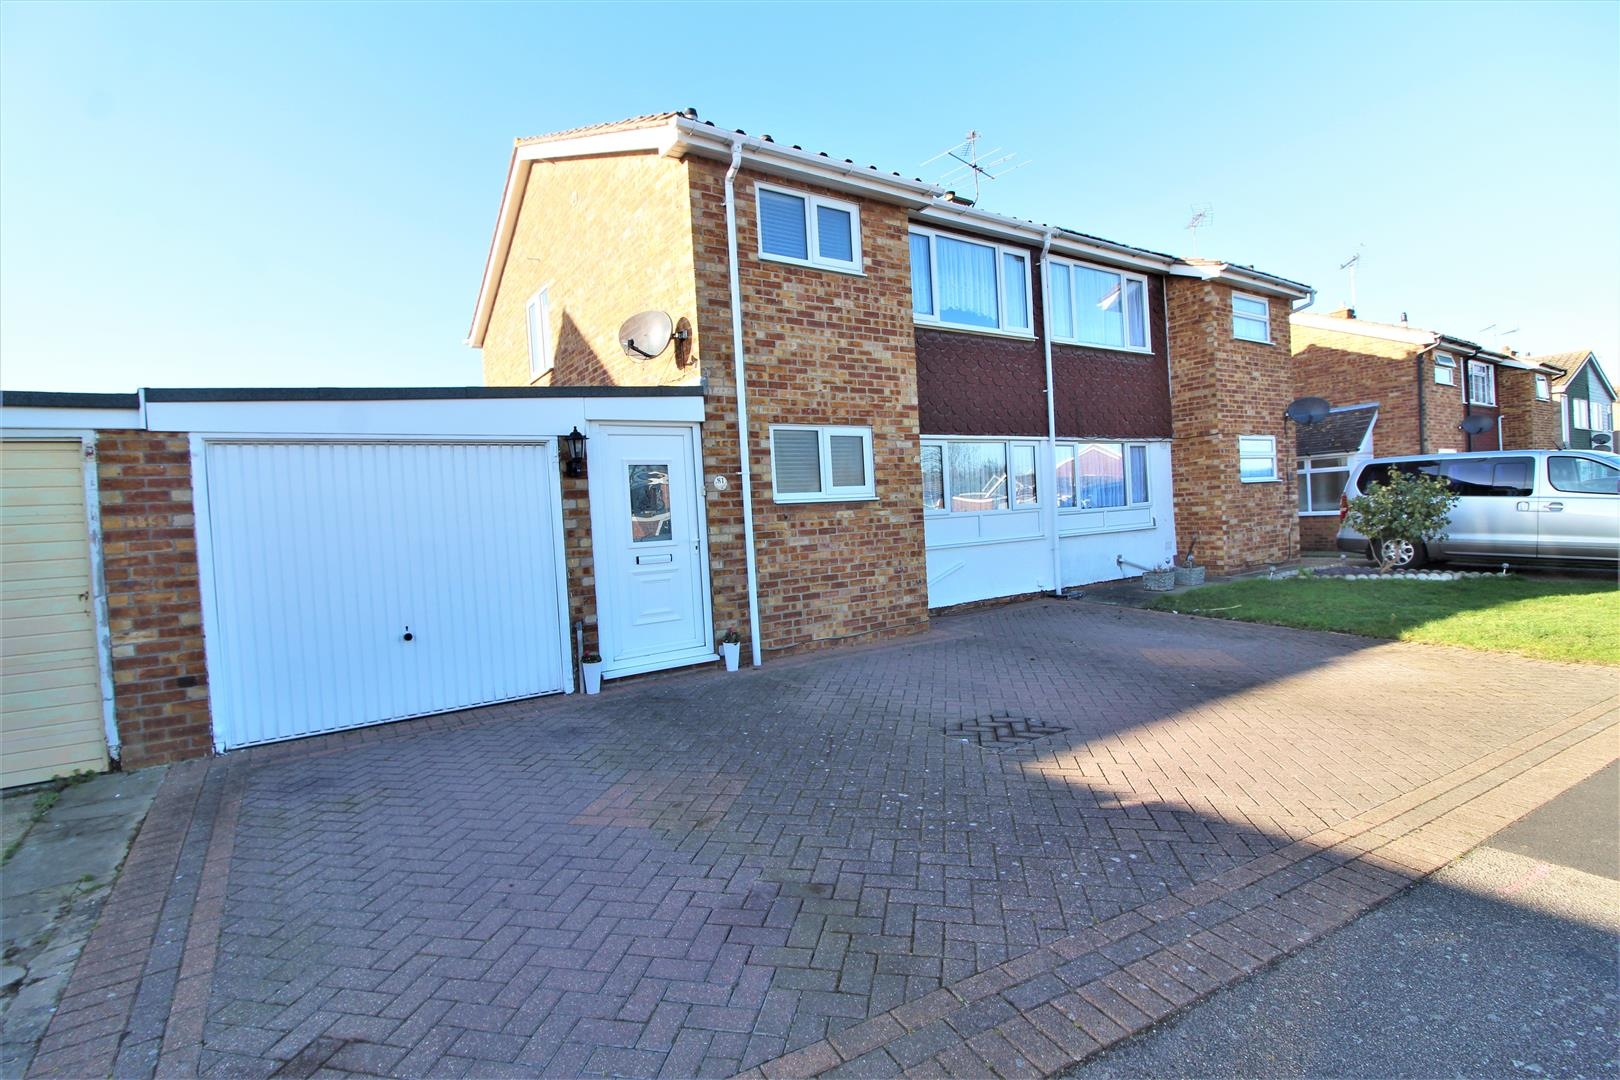 Craigfield Avenue, Clacton-On-Sea, Essex, CO15 4HR